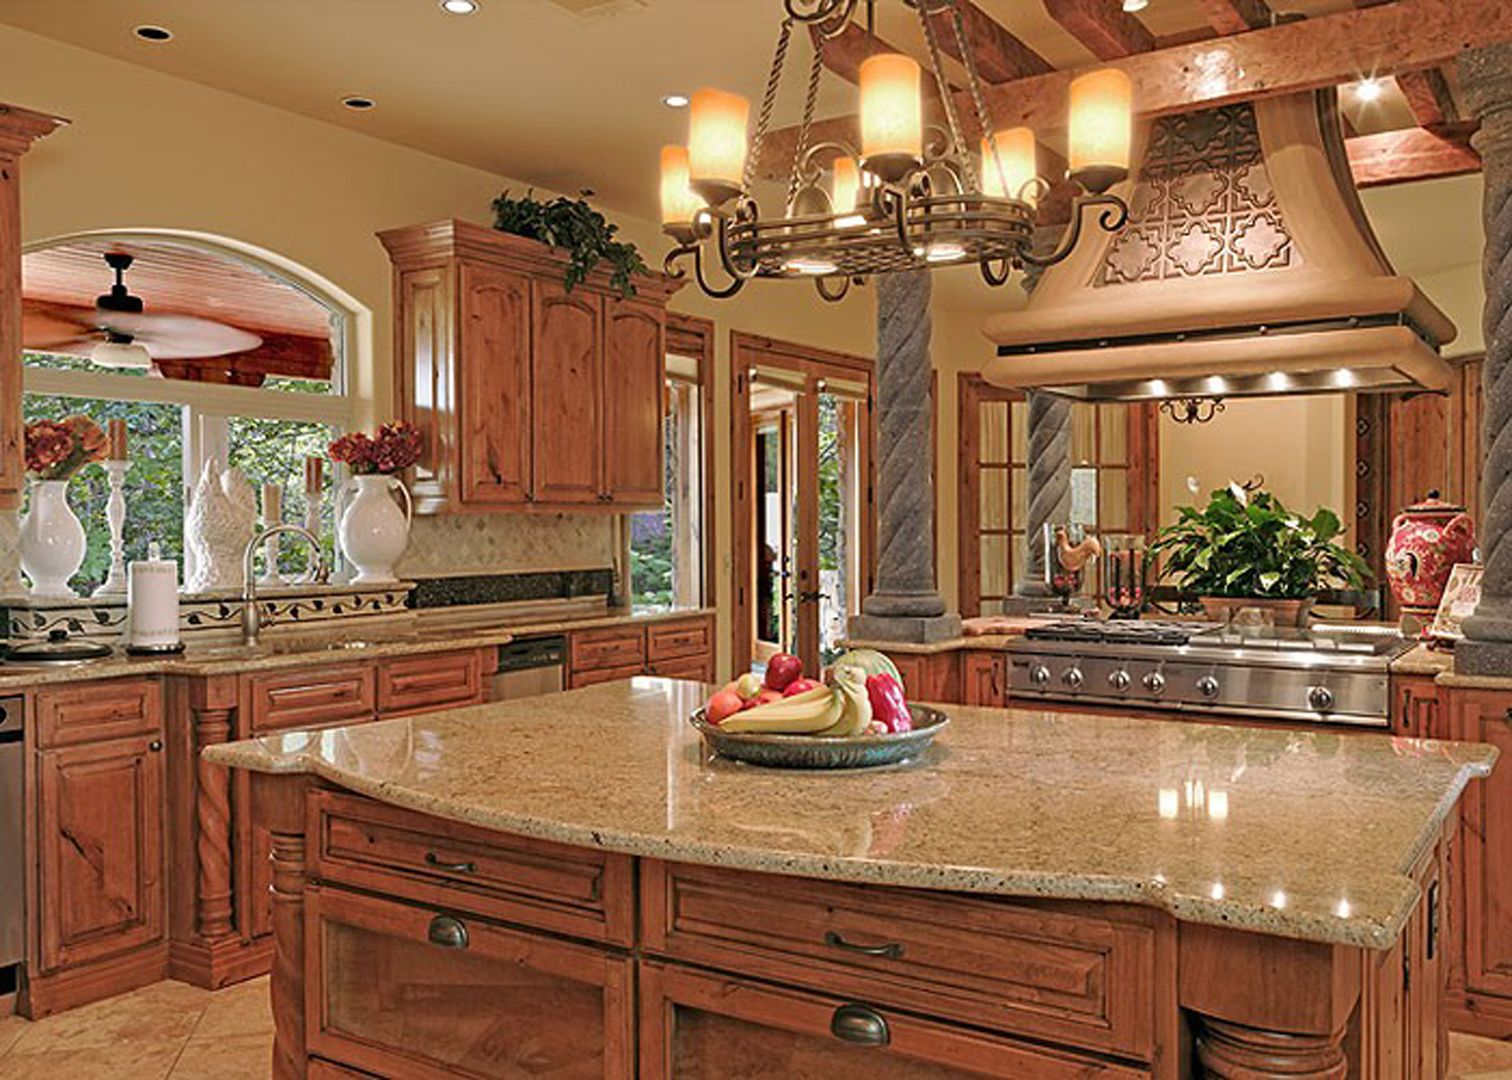 Tuscan Kitchen Design Harika Mutfaklar  Kitchens Tuscan Bathroom And Bathroom Designs